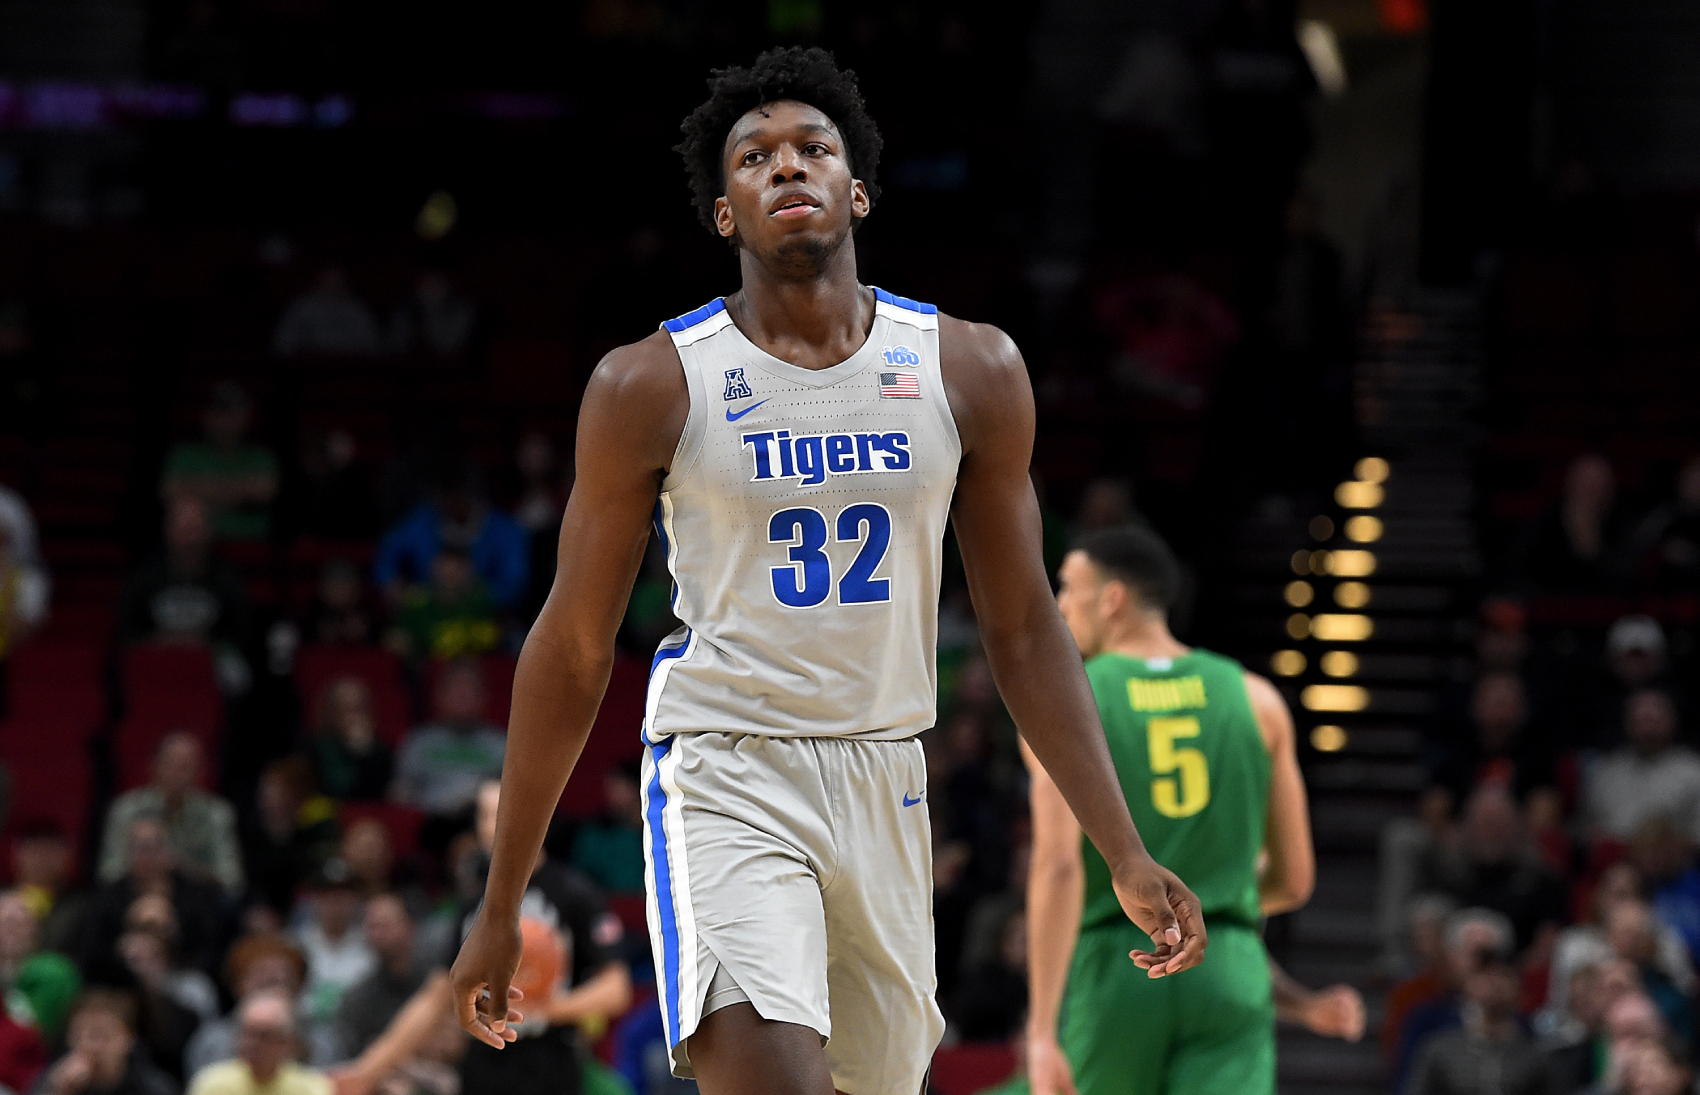 James Wiseman has a ton of potential after going to the Golden State Warriors with the No. 2 pick. The Warriors now have a game plan for him.